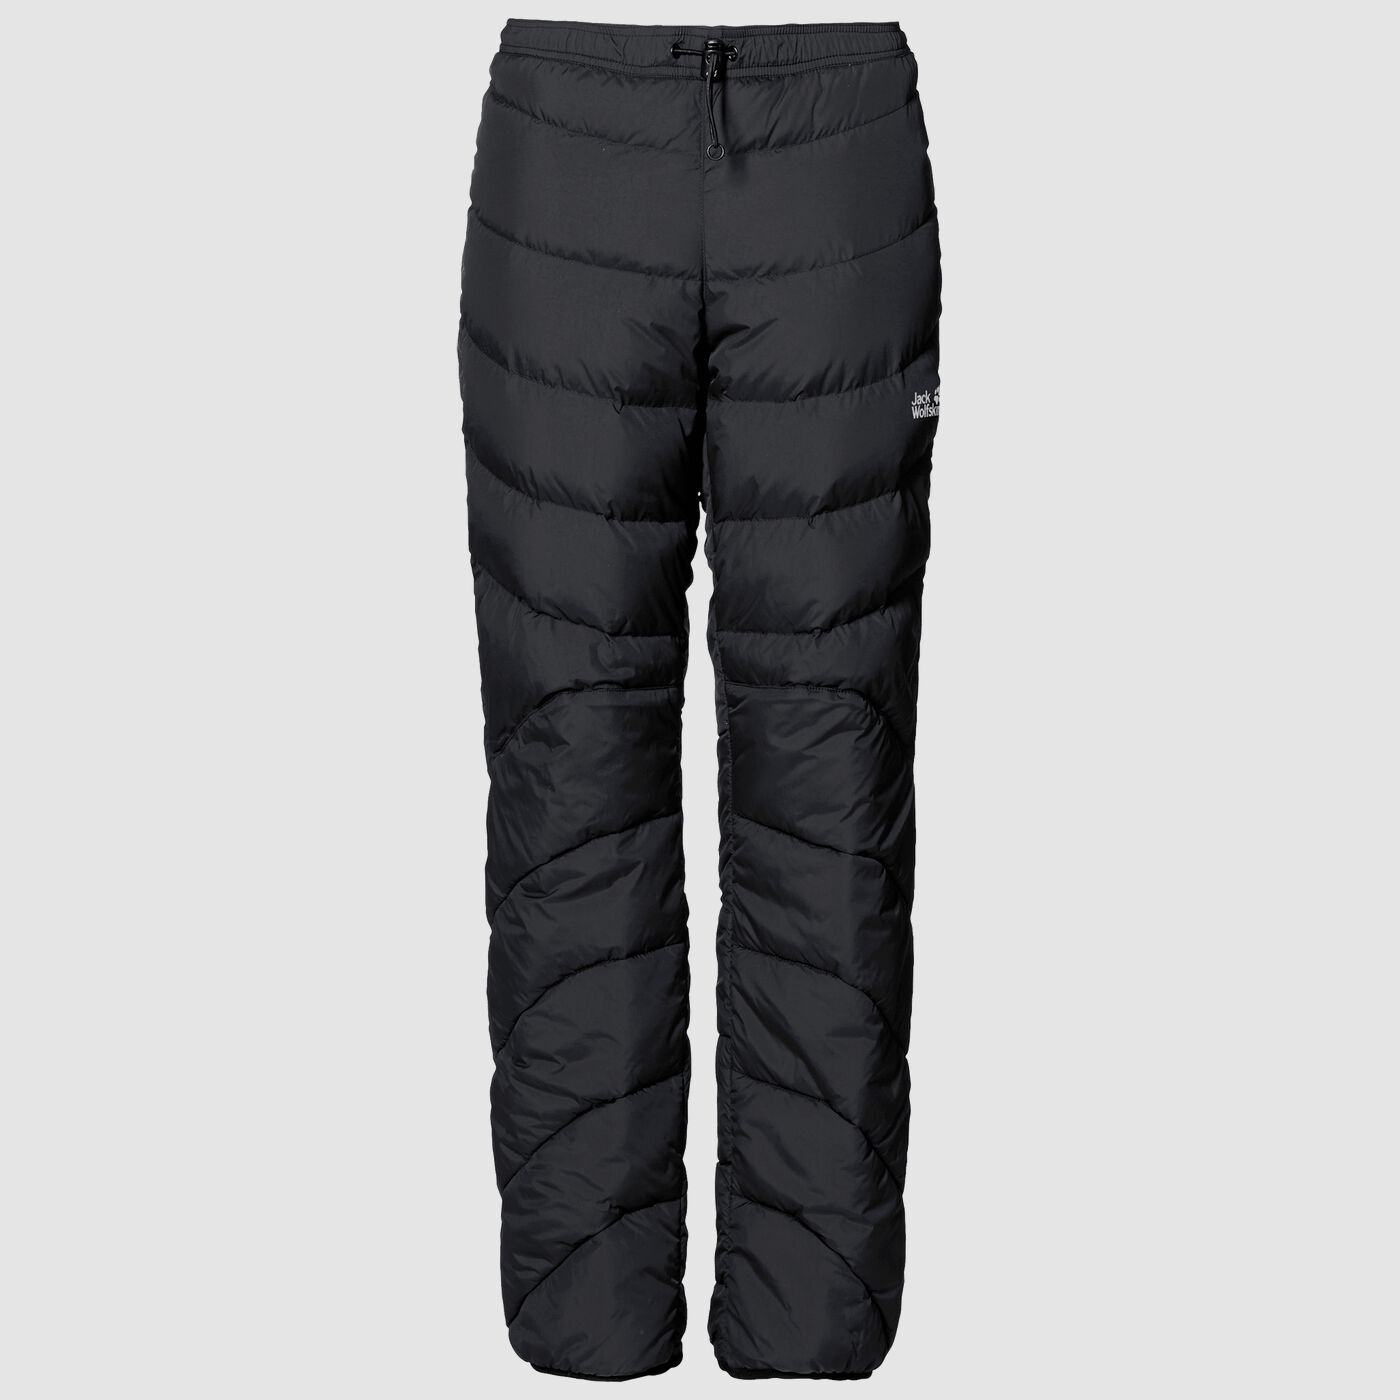 ATMOSPHERE PANTS WOMEN